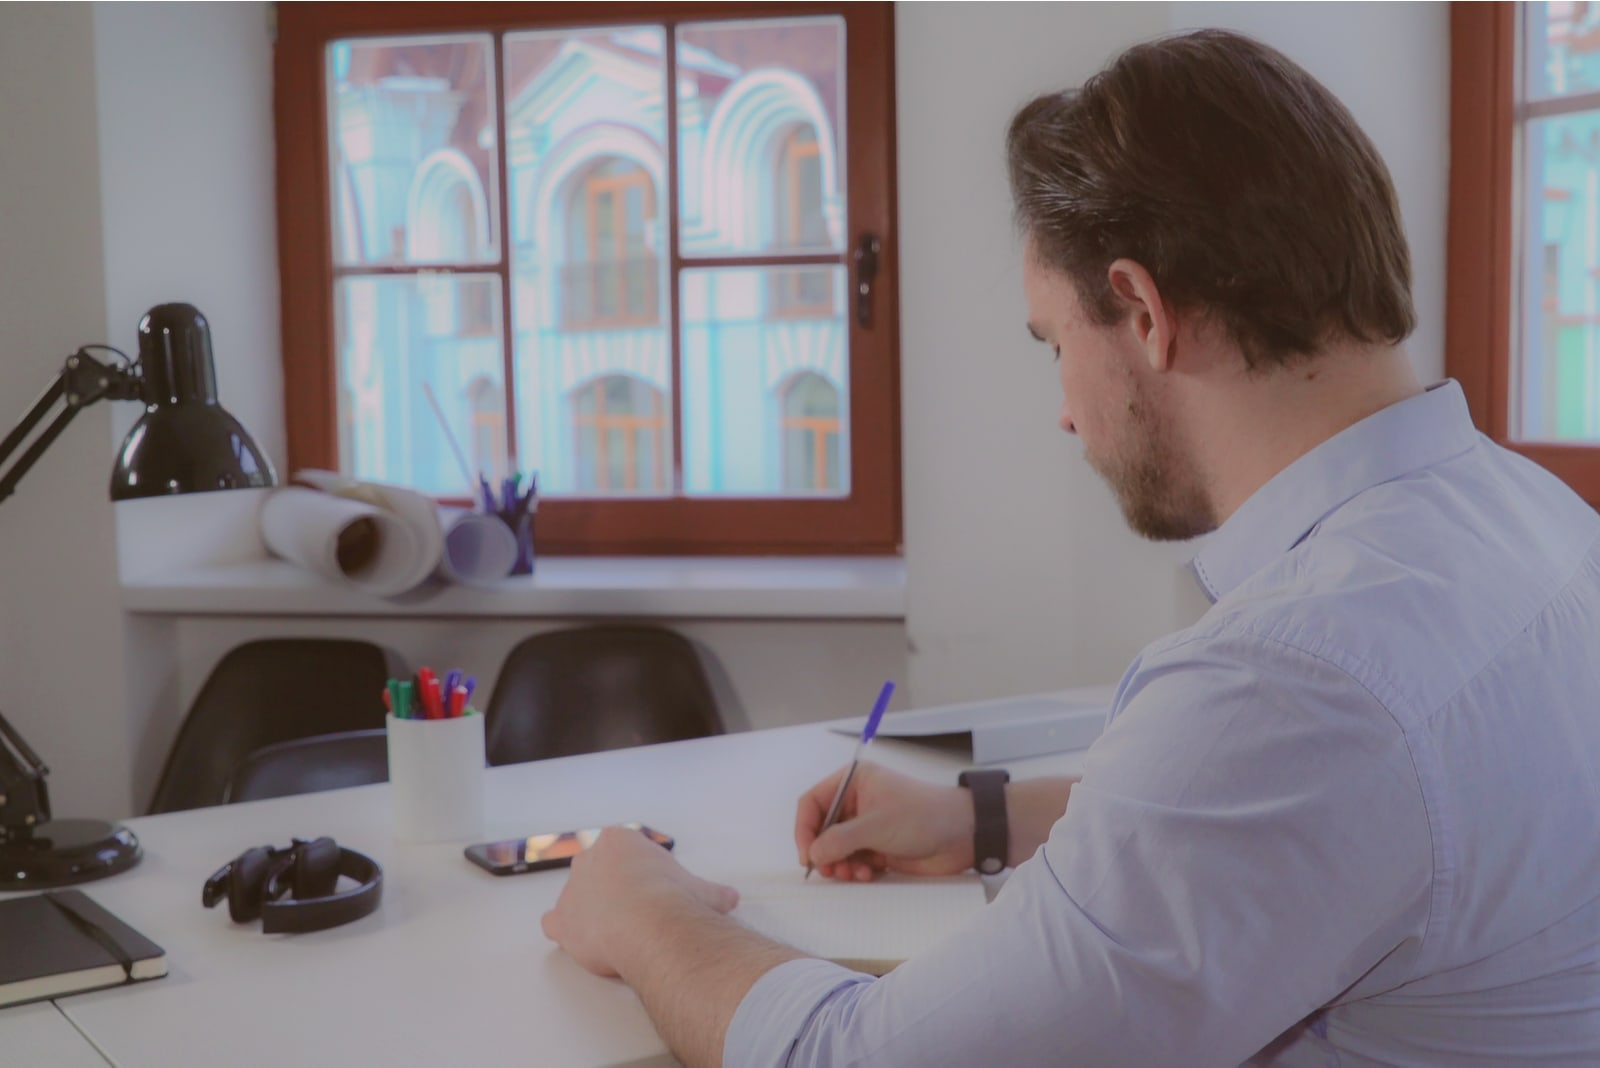 a man sits at a table and writes a letter